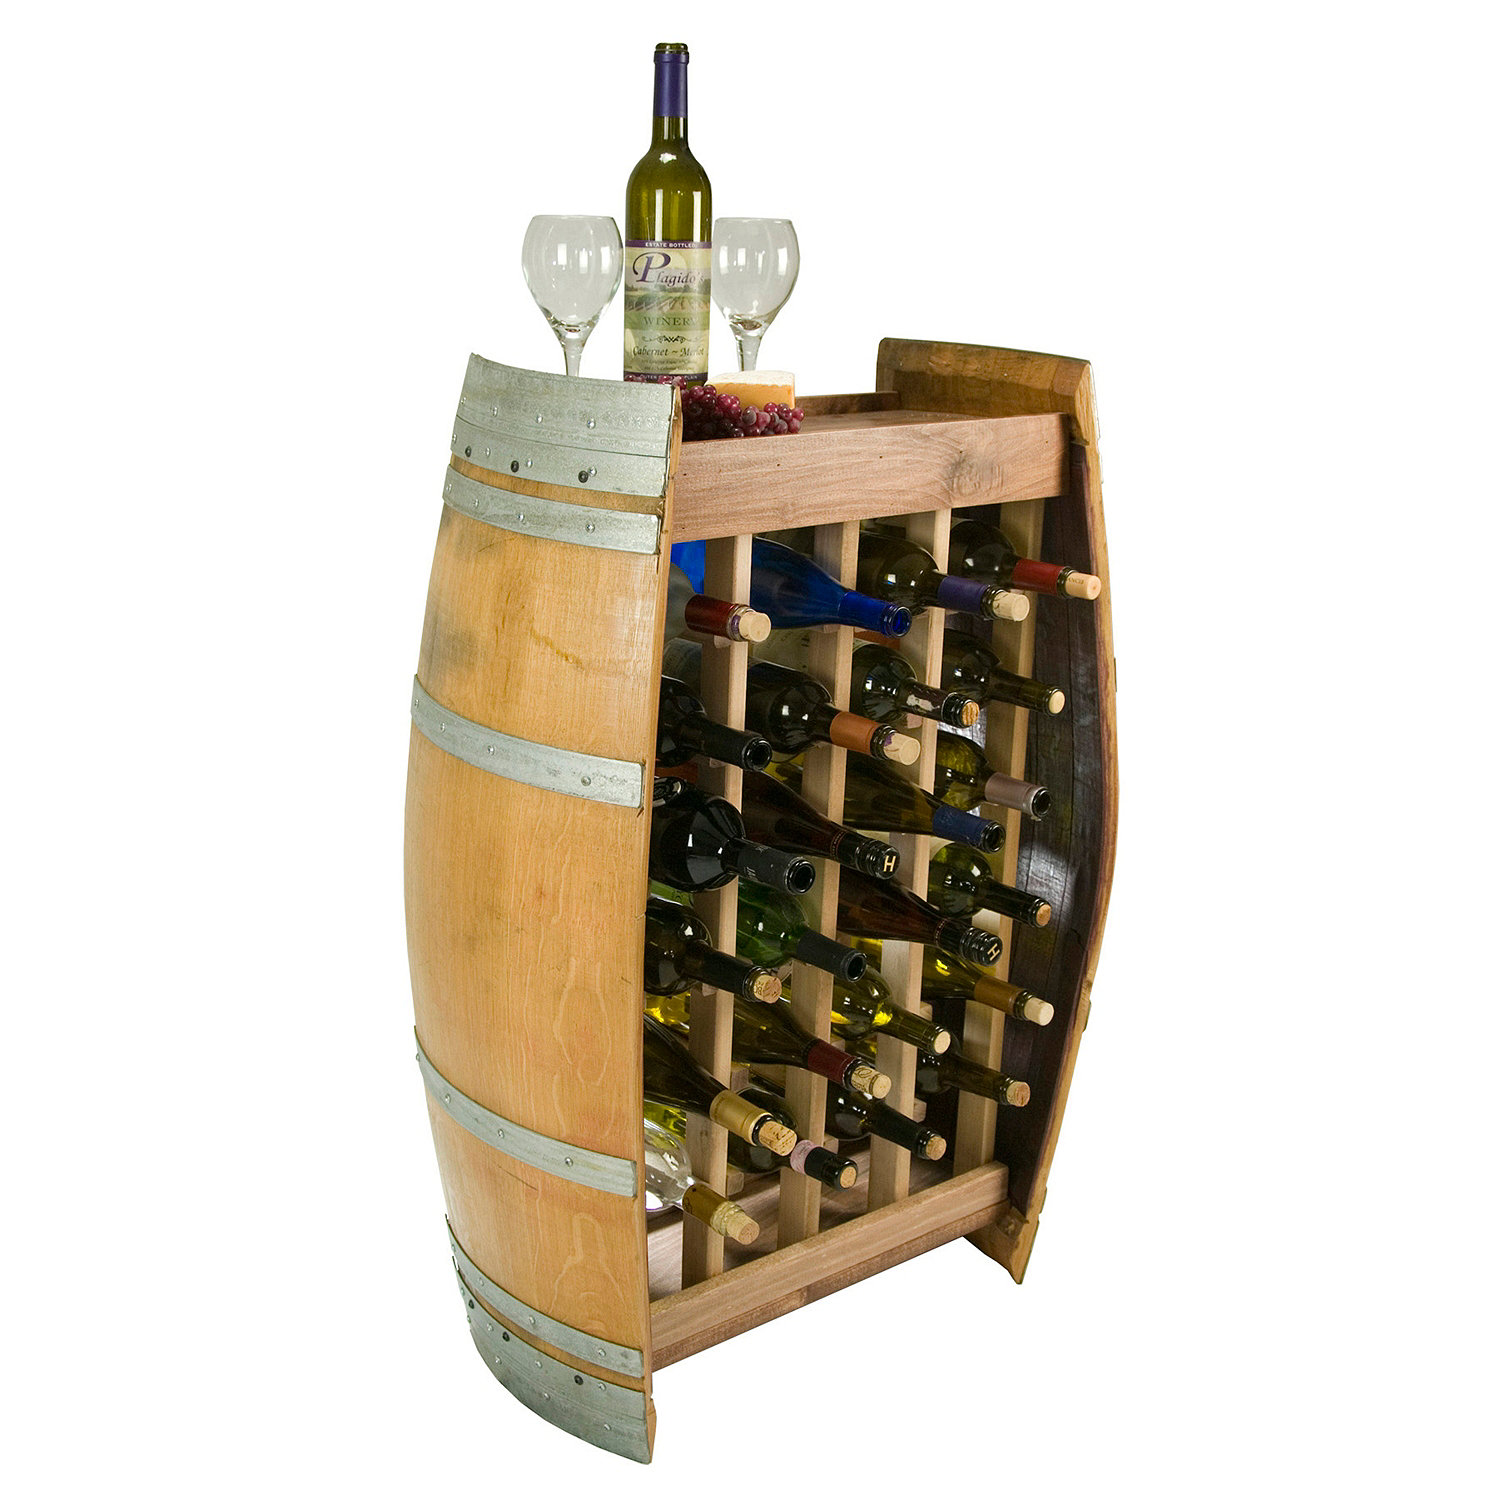 designs barrel from made chair reclaimed wooden splendid most of wine bar whisky furniture cabinet used beer coffee out bench table old cask rack whiskey barrels uhuru tables